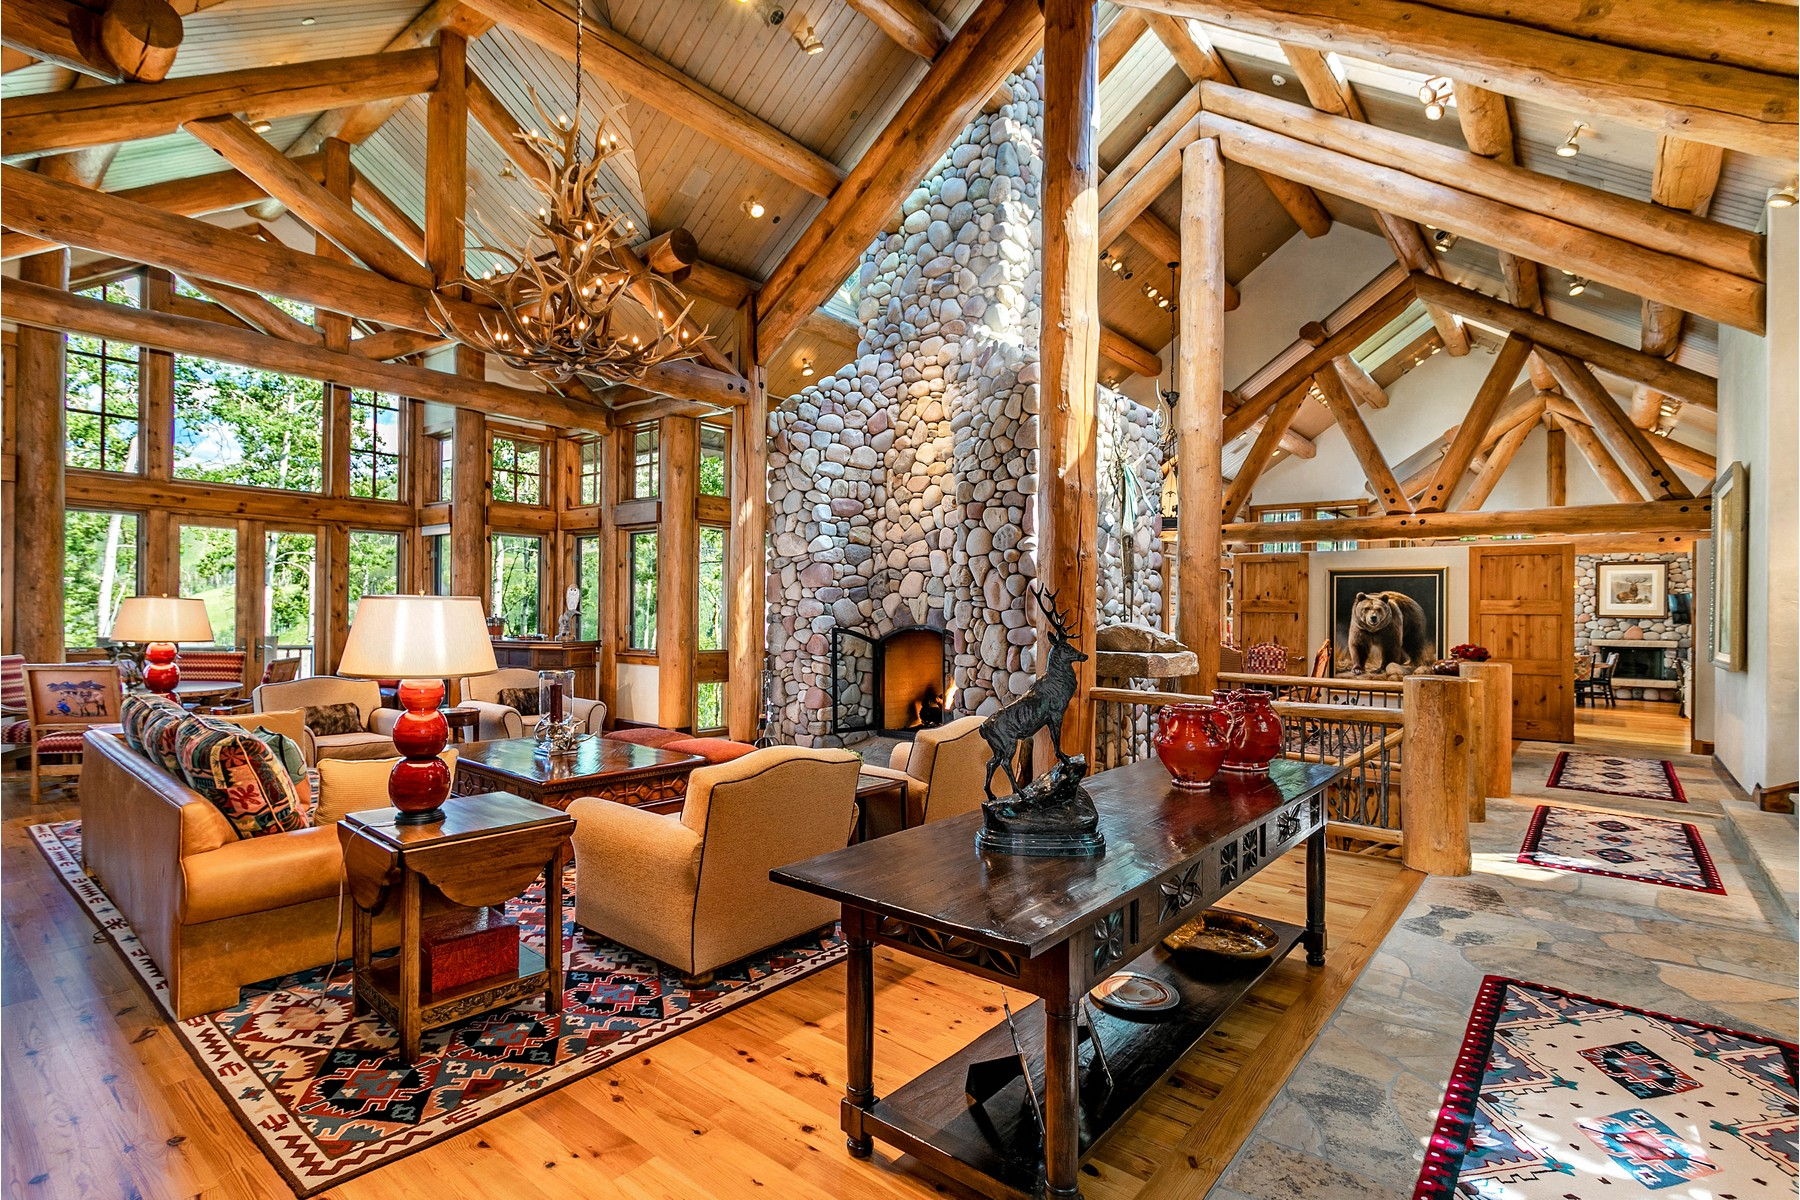 Single Family Home for Active at Architectural Log Masterpiece 246 Strawberry Park Court Beaver Creek, Colorado 81620 United States